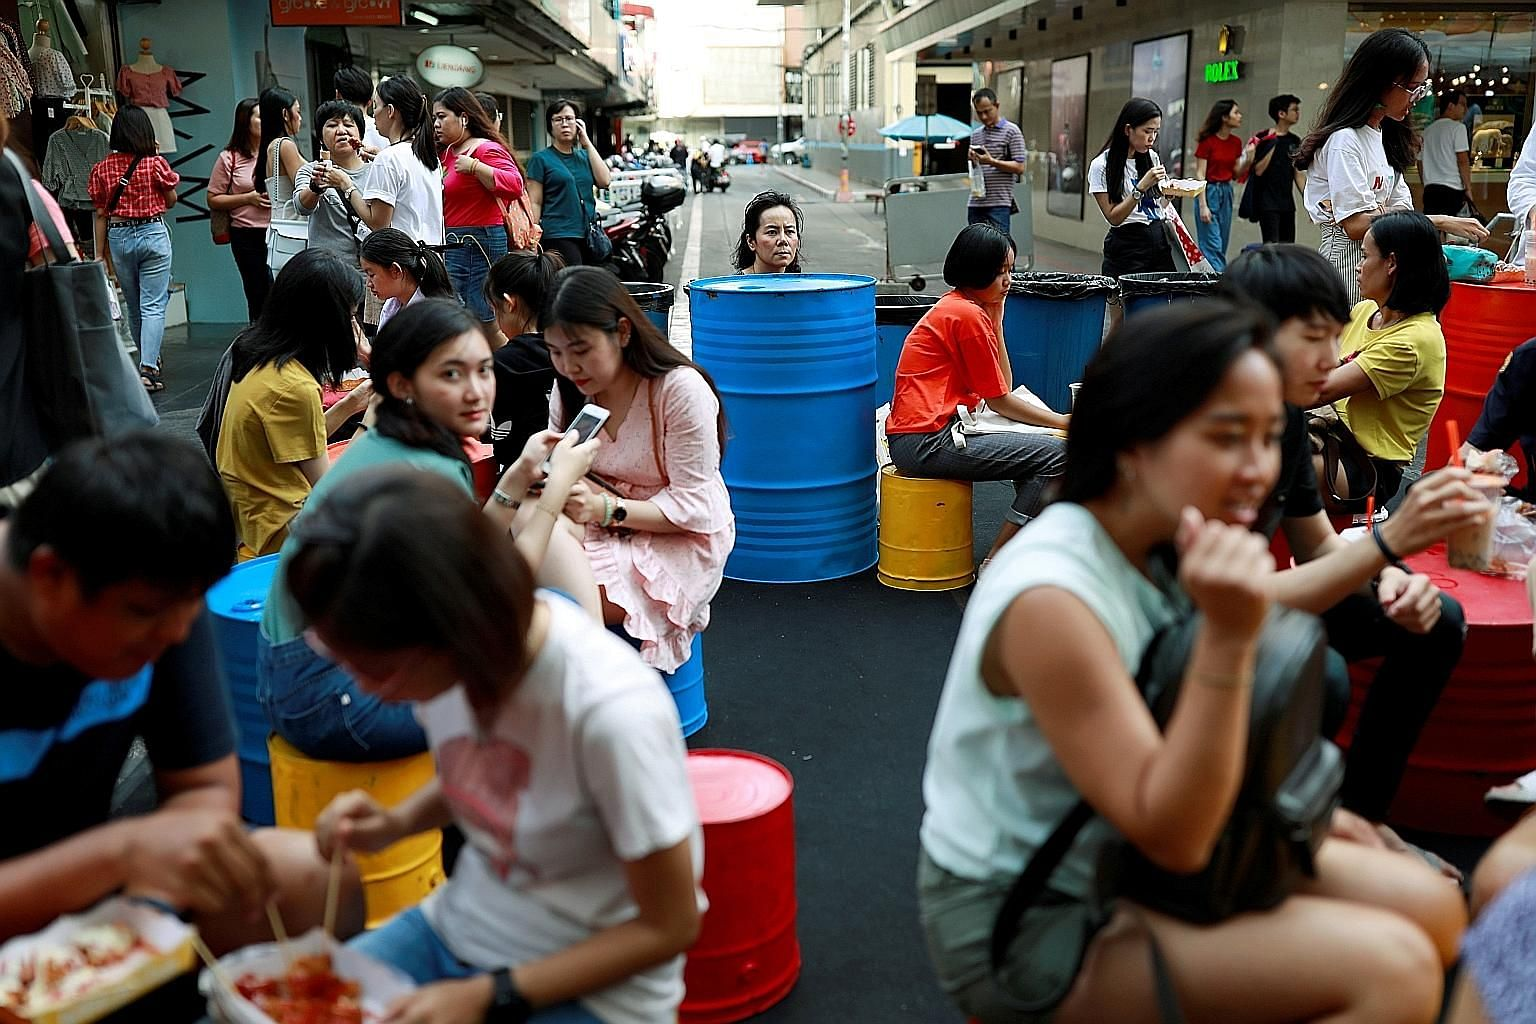 A street market in Bangkok. A stimulus plan launched by Thailand's government aims to get citizens to help boost the flagging tourist industry.